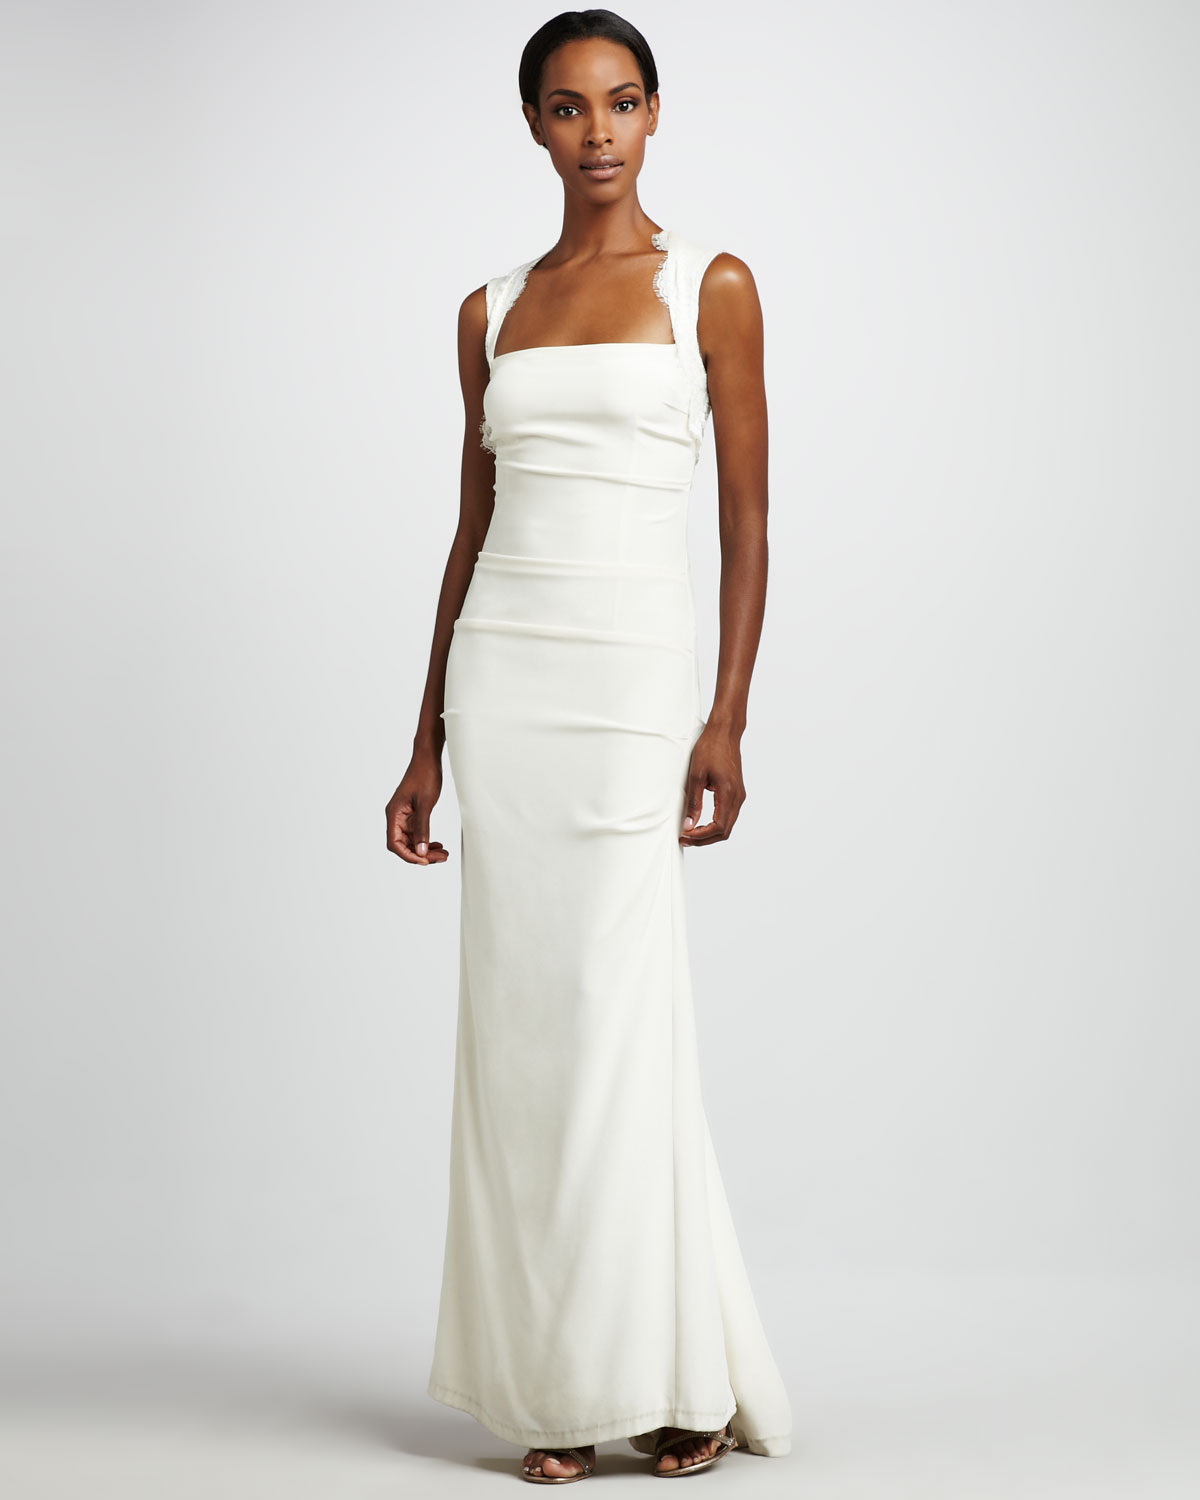 Nicole Miller Square Neck Gown